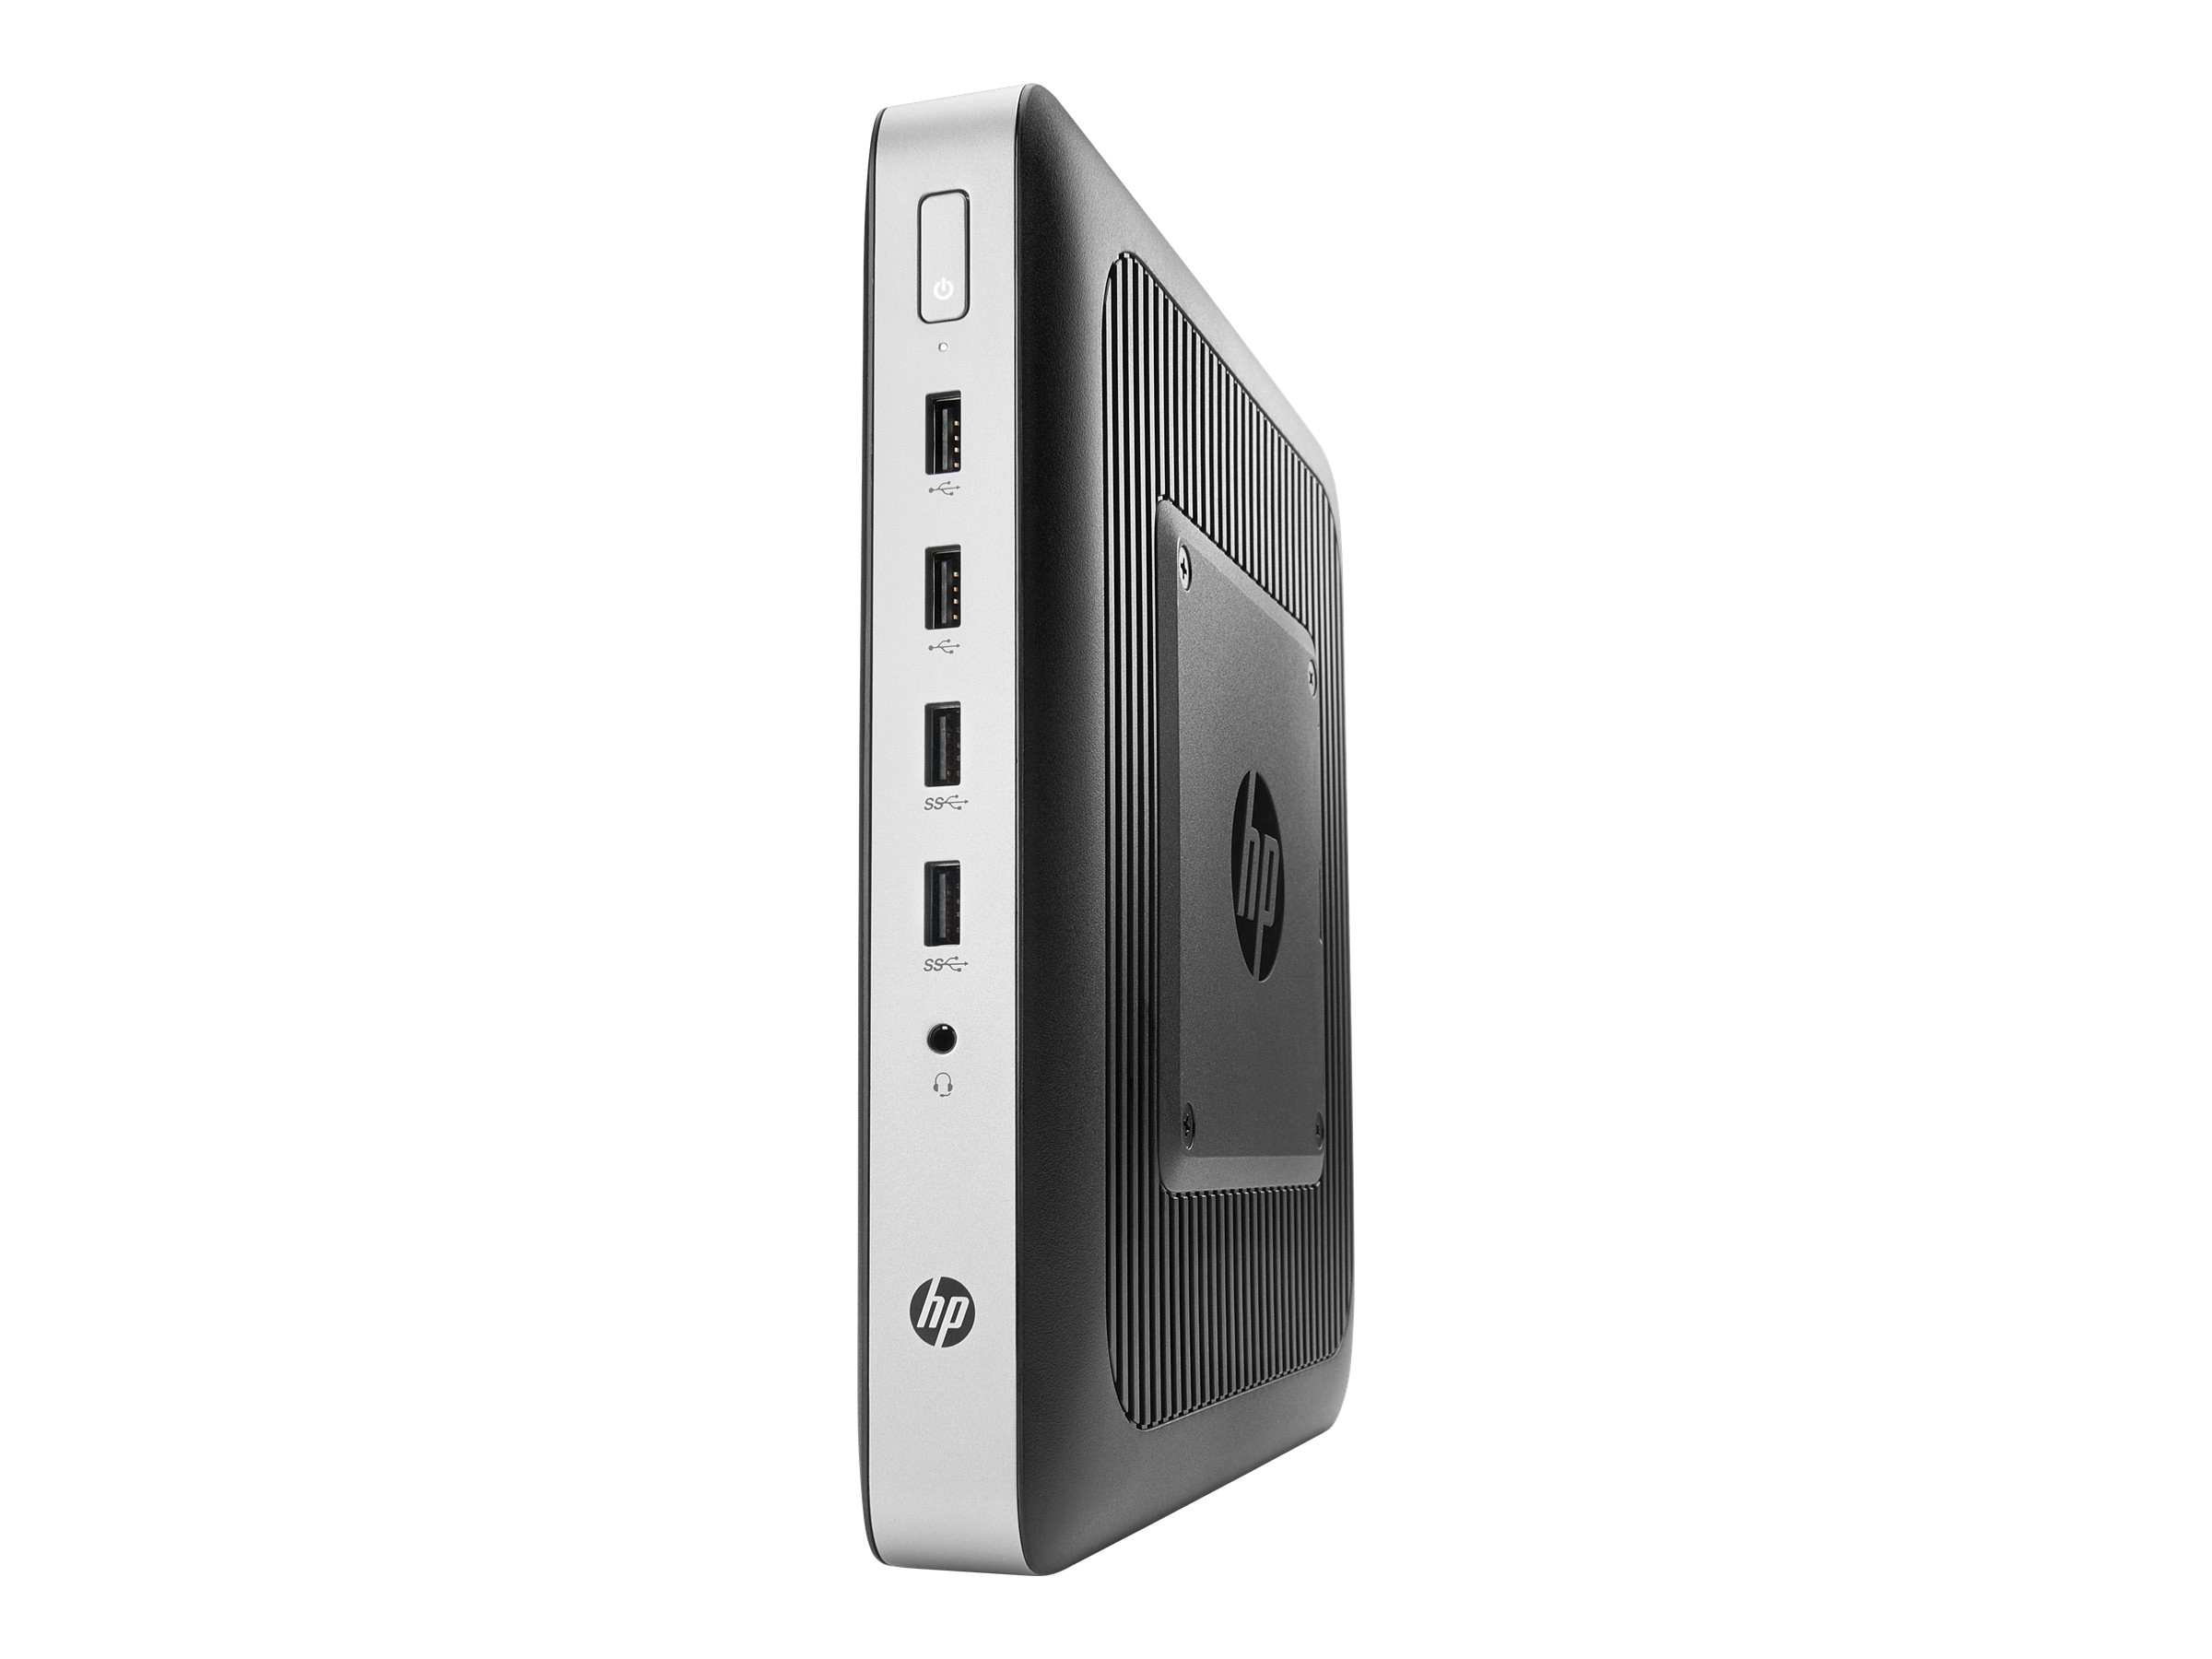 HP t630 Thin Client AMD GX-420GI 2.0GHz 4GB 16GB Flash R6E GbE ac VGA ThinPro